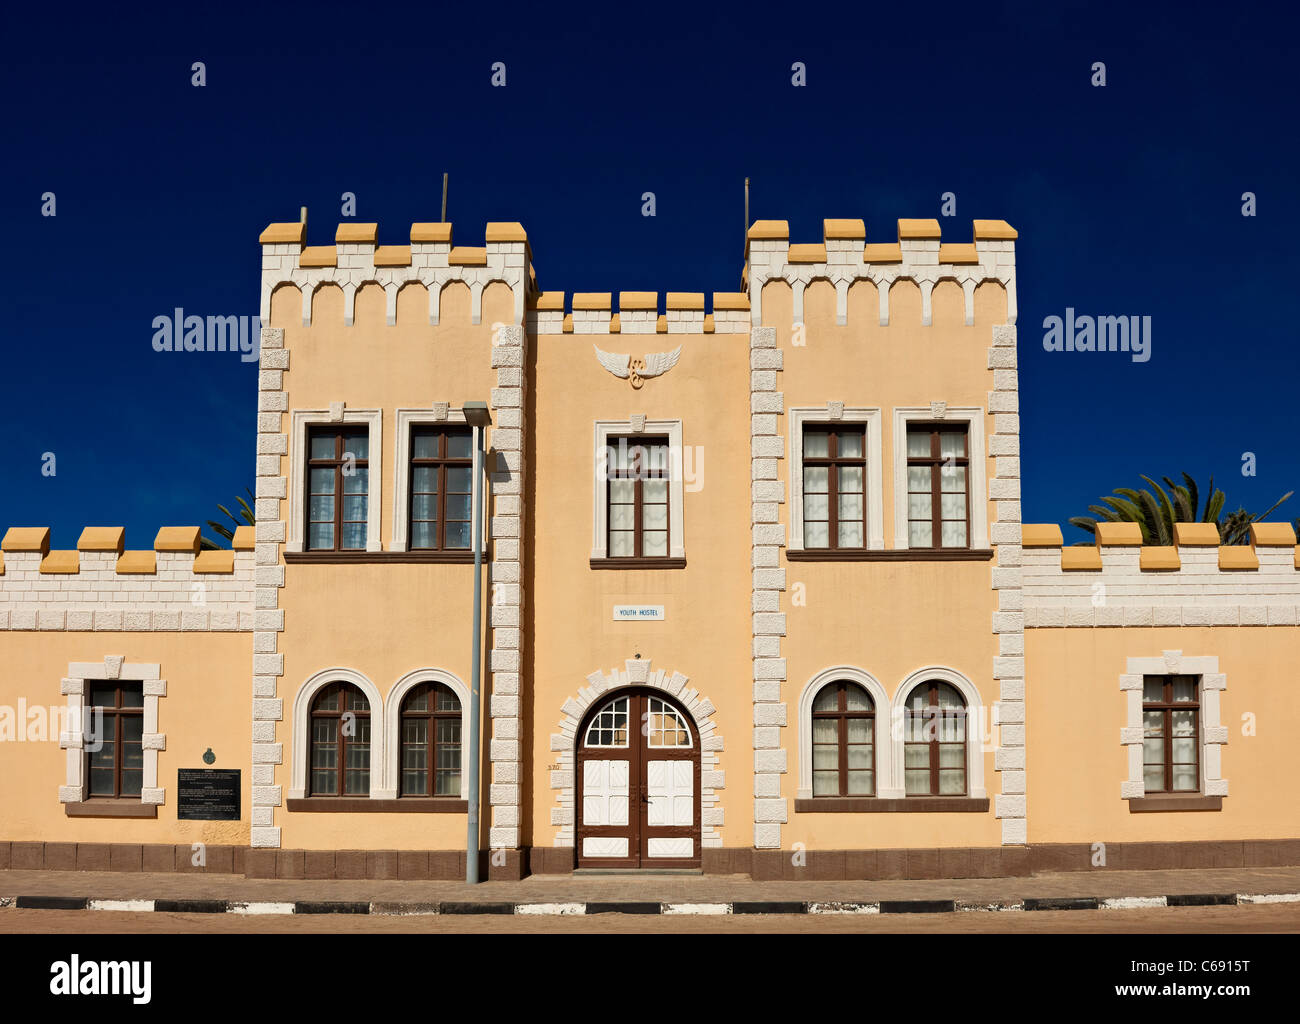 historical German barracks from colonial times, now youth hostel, Swakopmund, Namibia, Africa - Stock Image